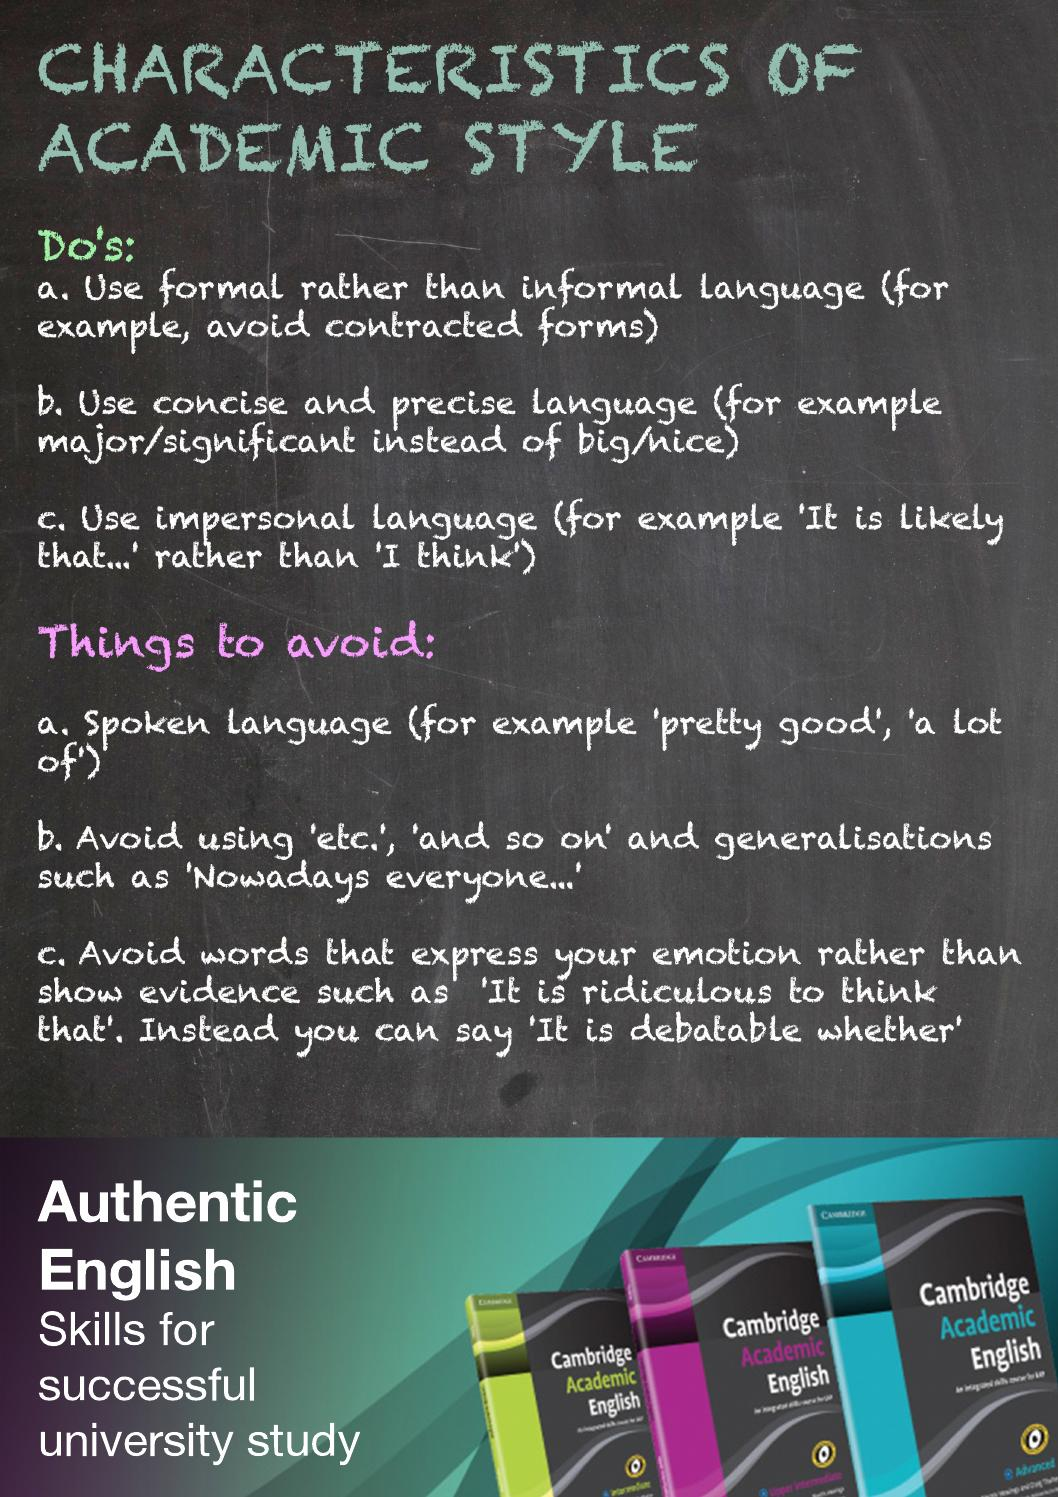 the purpose and historical academic use of formatting styles essay Writing history essays february 2014 contents how to use this booklet 1 1 reading 5 2  7 presentation and style guide 30 8 assessment 32  1 how to use this booklet this booklet is a guideline for history essays it offers advice for preparing assignments and  undoubtedly have different formatting, layout and style requirements if in.